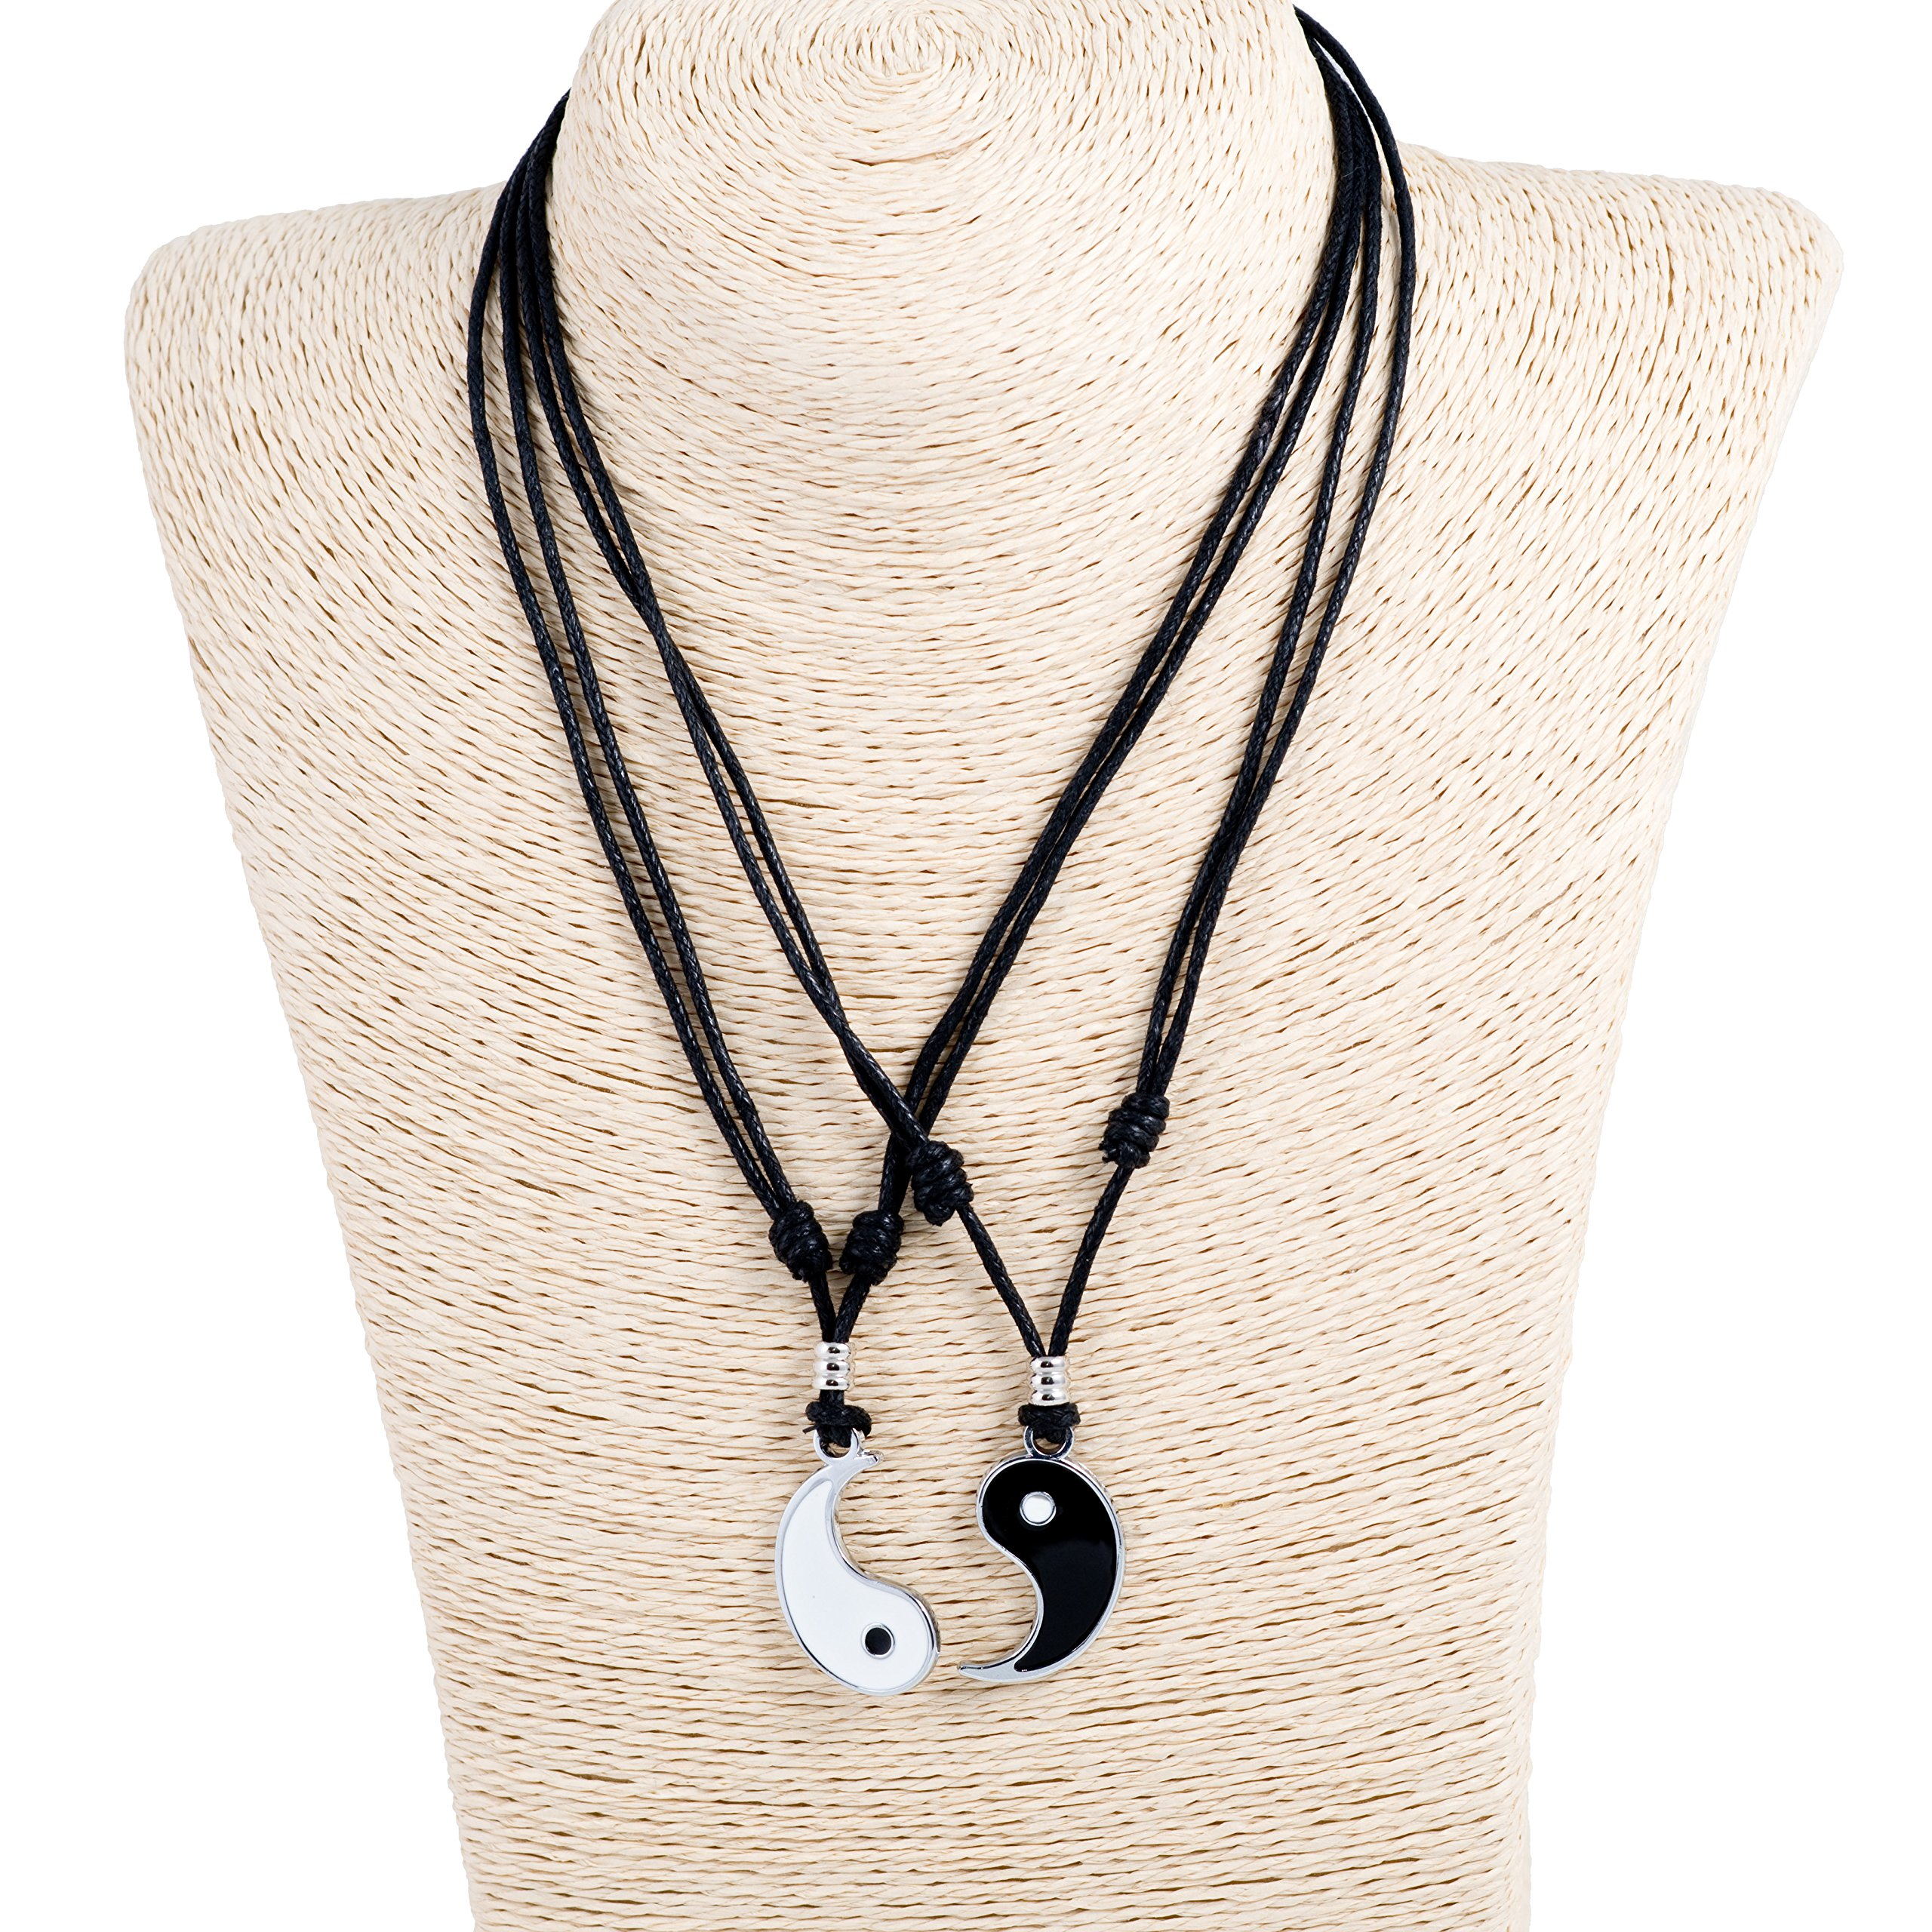 Yin Yang Pendant Couple Set on Adjustable Black Rope Cord Necklaces by BlueRica